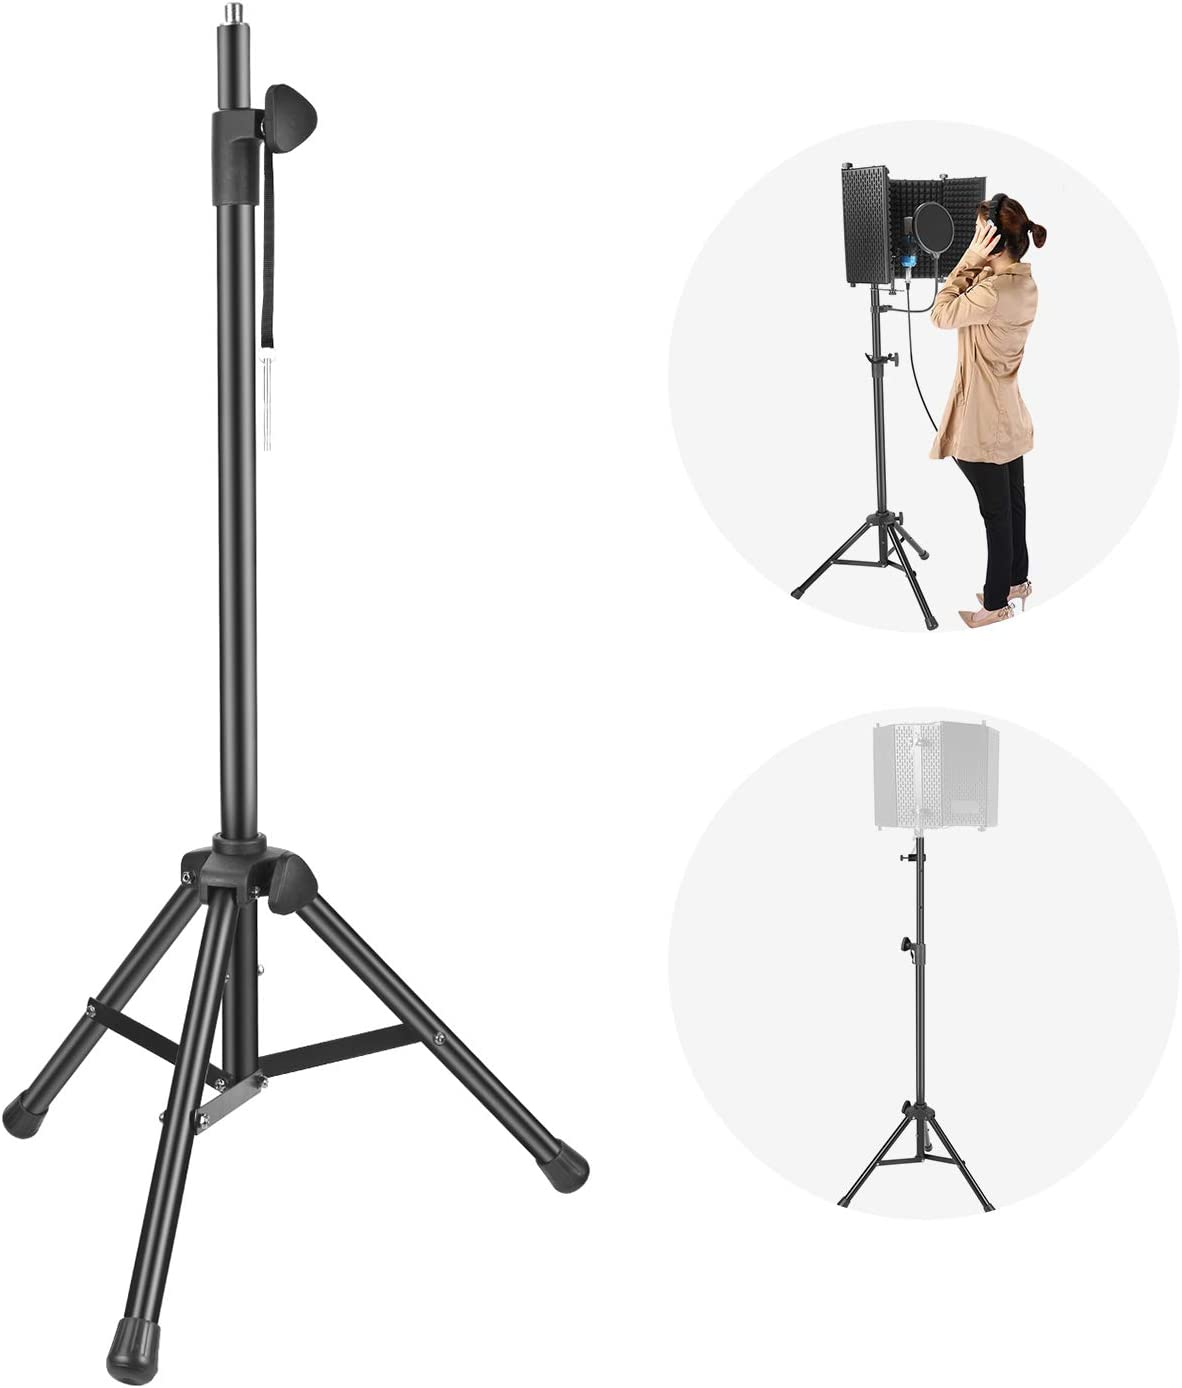 Neewer NW002-1 Wind Screen Bracket Stand with Aluminum Tube, Non-slip Feet, Adjustable Height, 65.2 inches/165.5 centimeters Stand Suitable for Supporting Acoustic Isolation Shield in Studio (Black)